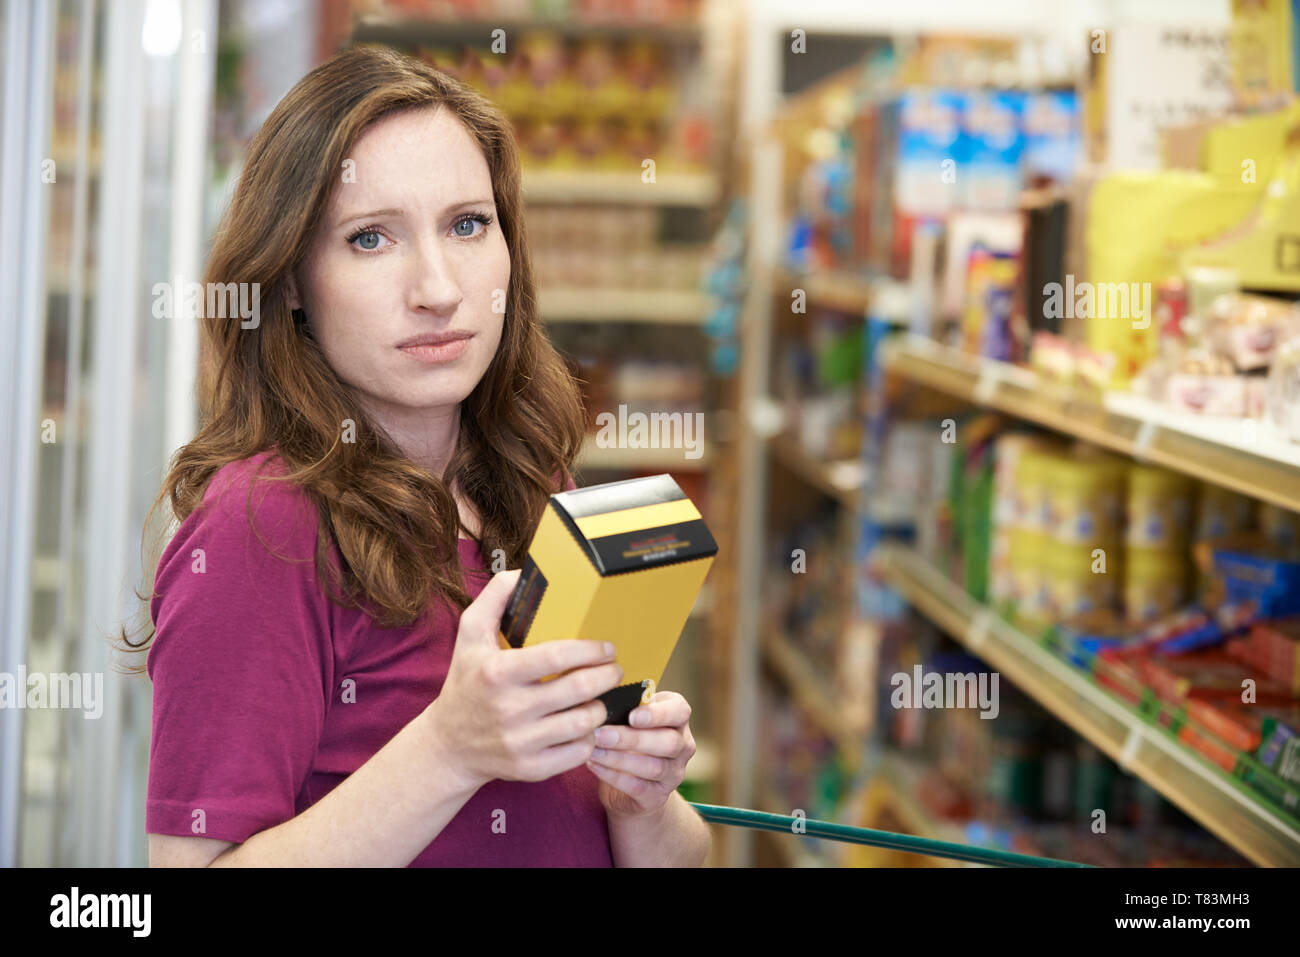 Portrait Of Woman Checking Food Labelling On Box In Supermarket - Stock Image